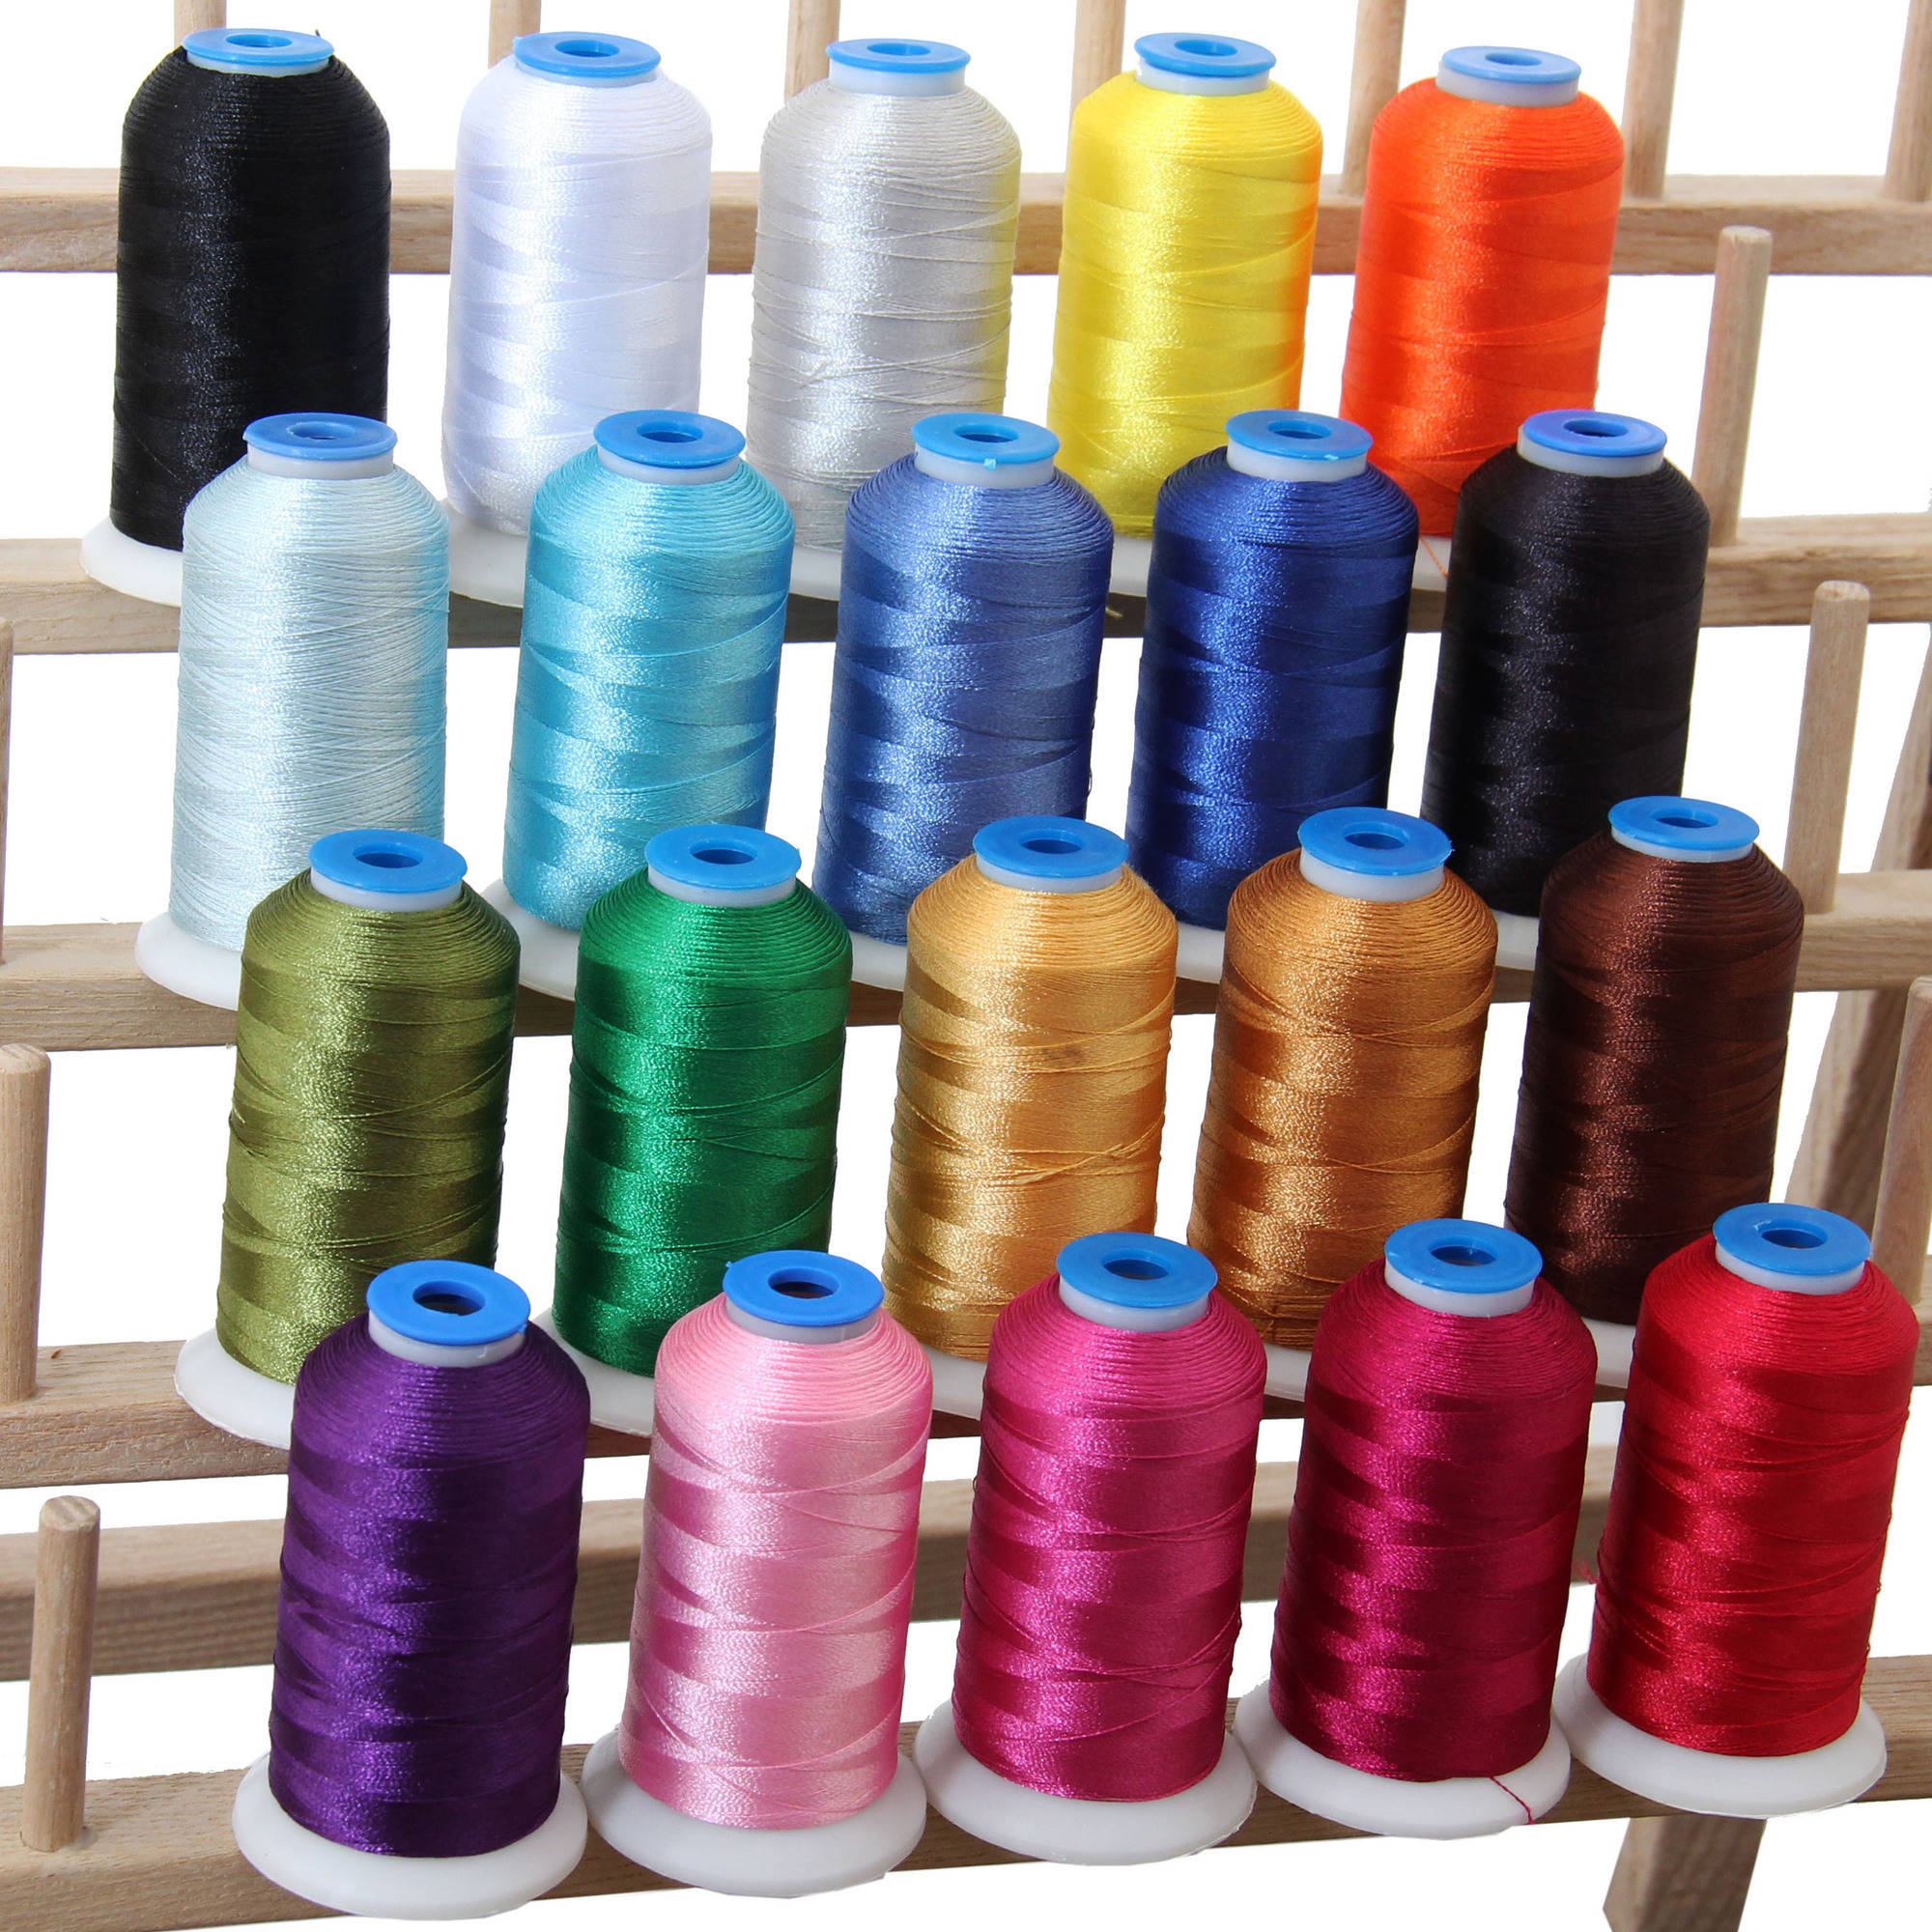 0870 0800-0874 Isacord Embroidery Thread 1000m